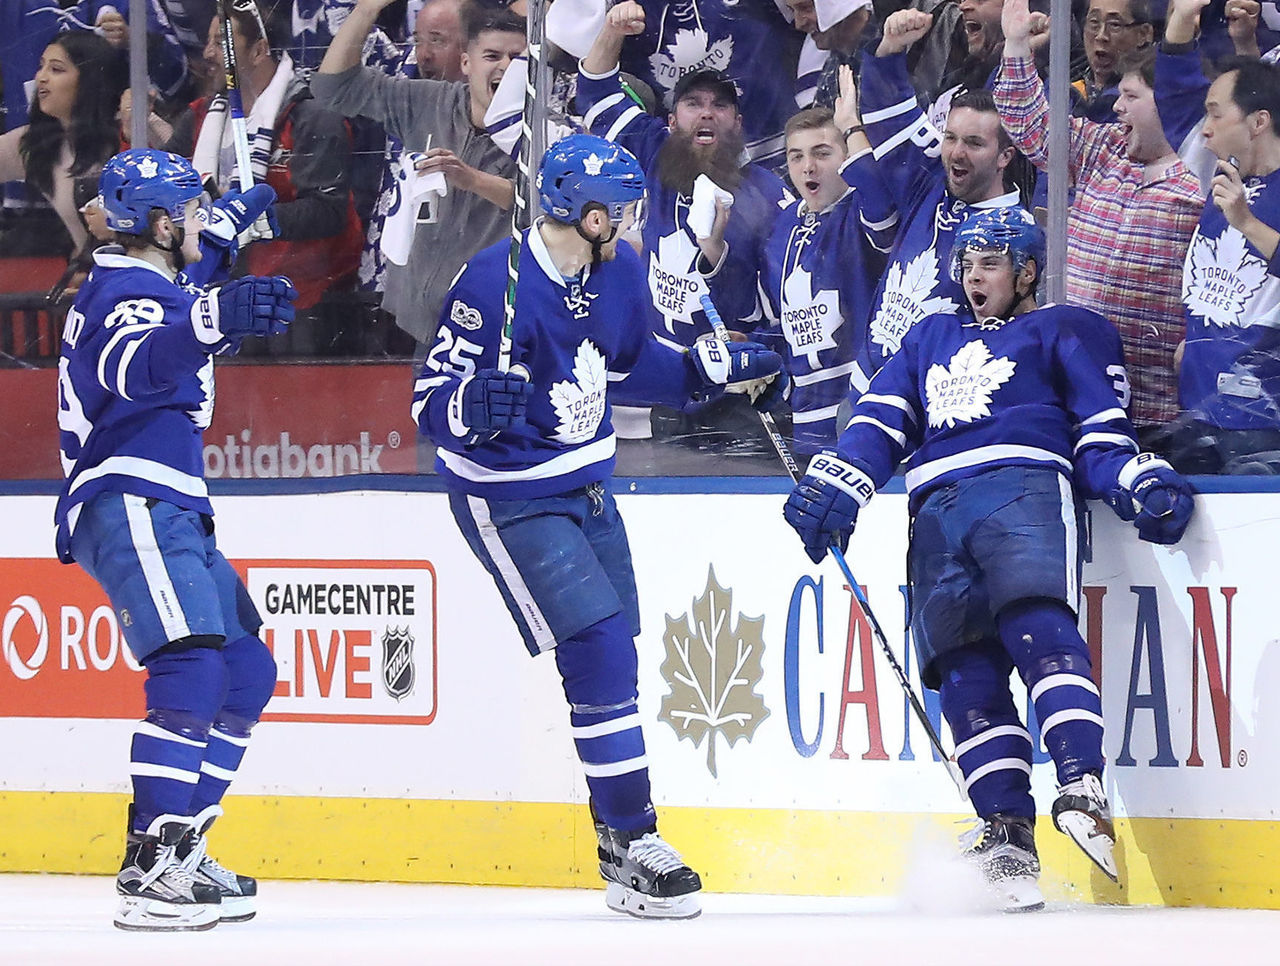 Cropped 2017 04 24t031547z 902573579 nocid rtrmadp 3 nhl stanley cup playoffs washington capitals at toronto maple leafs